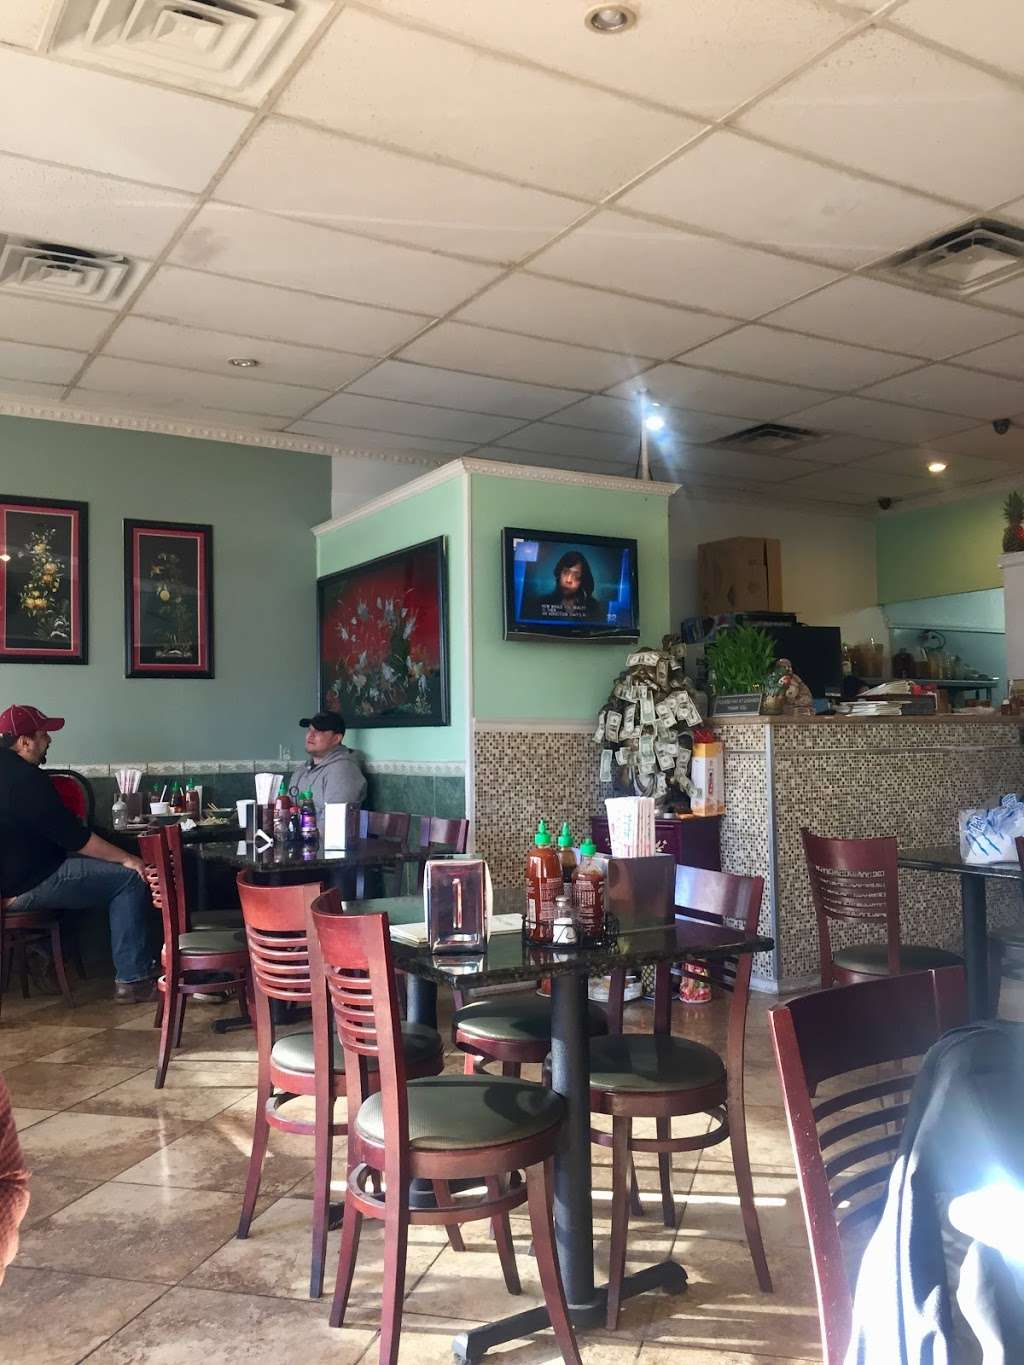 New Pho 999 - restaurant  | Photo 1 of 10 | Address: 12905 Sherman Way, North Hollywood, CA 91605, USA | Phone: (818) 982-9370